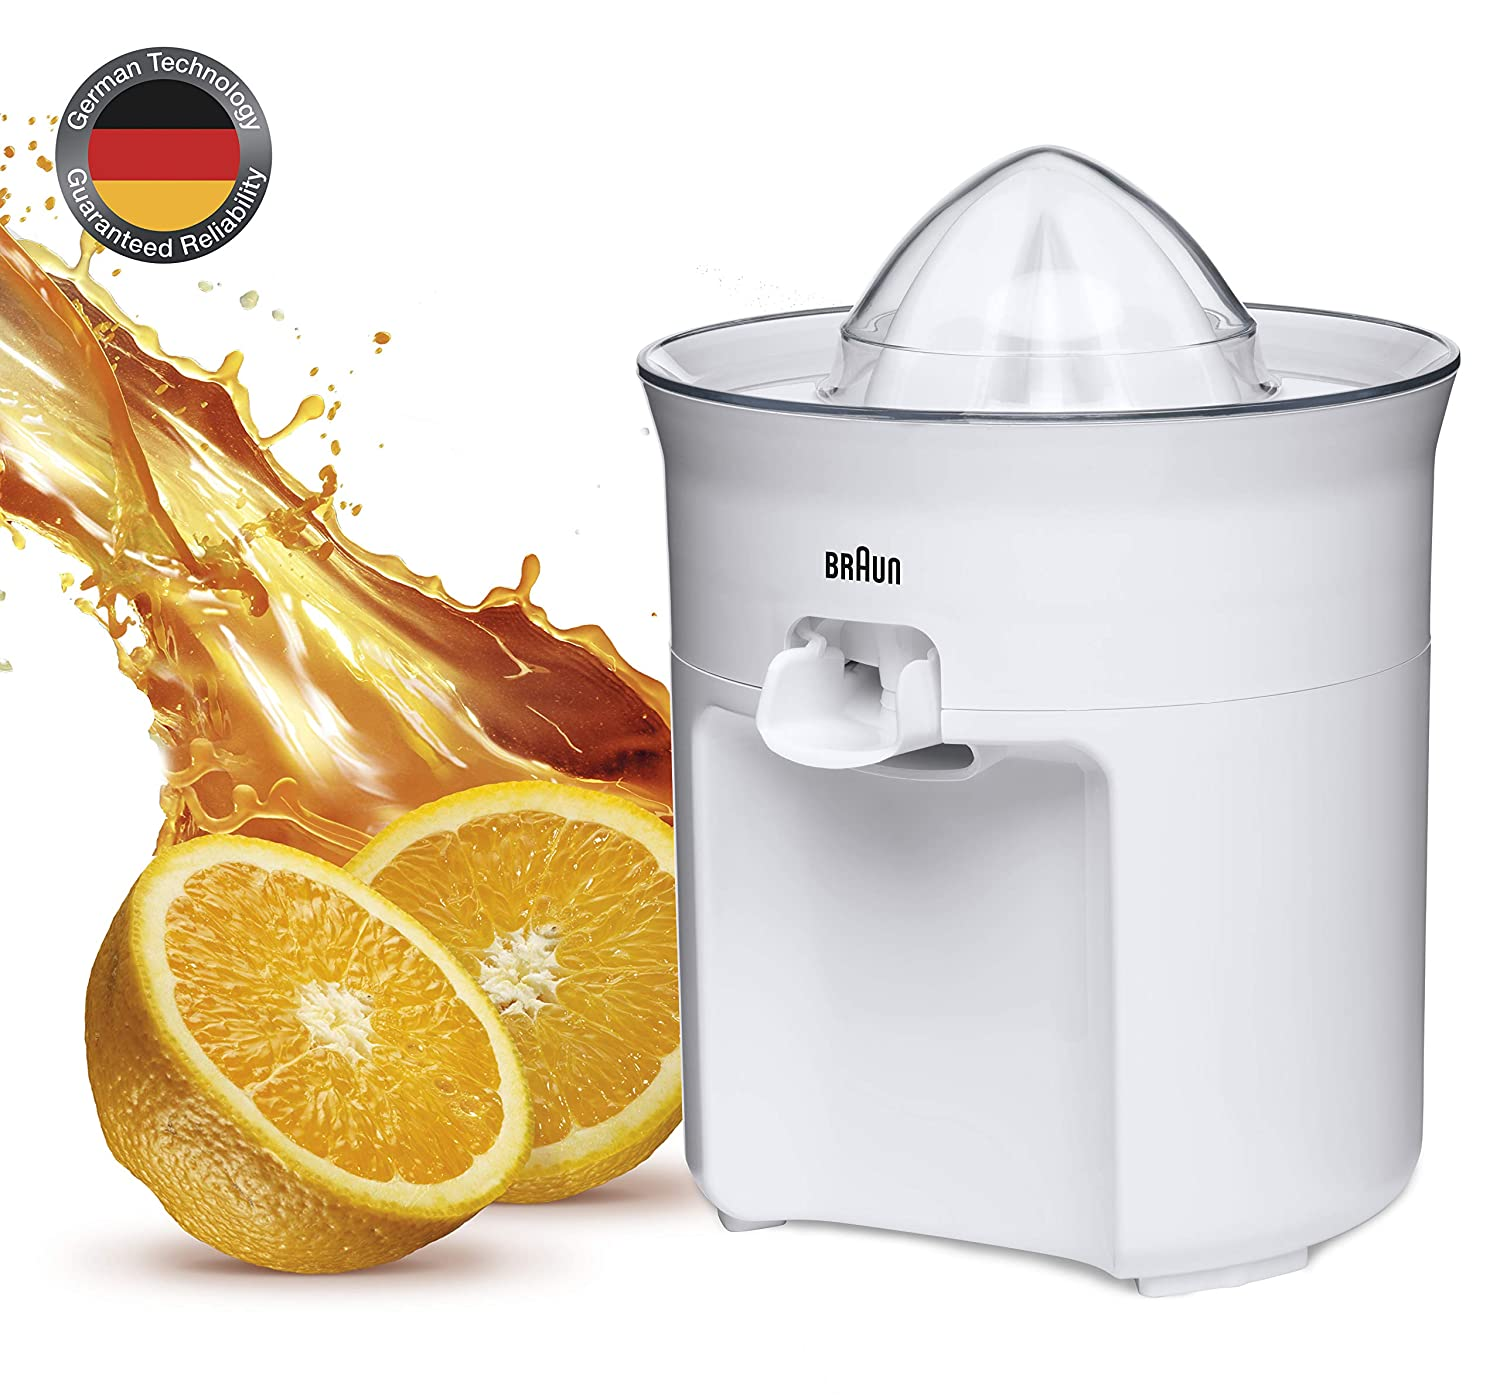 Braun Tribute Collection CJ 3050 - citrus press Braun GmbH CJ3050 0X22611002_Blanco